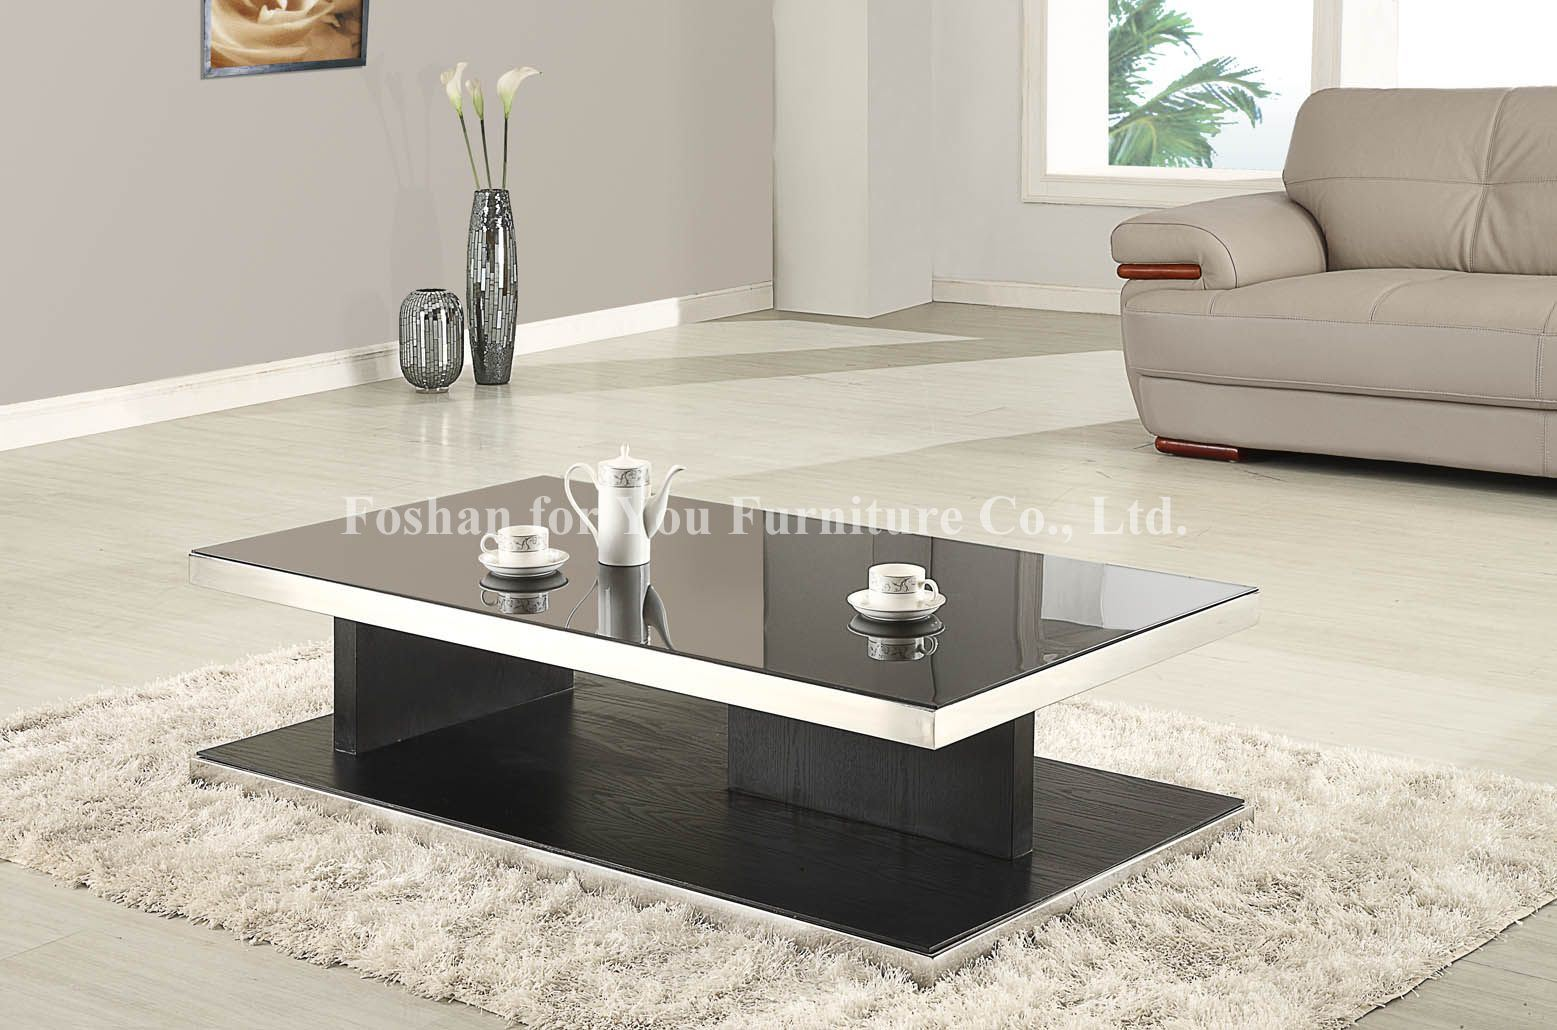 China living room furniture coffee table t351l china for Living room coffee table